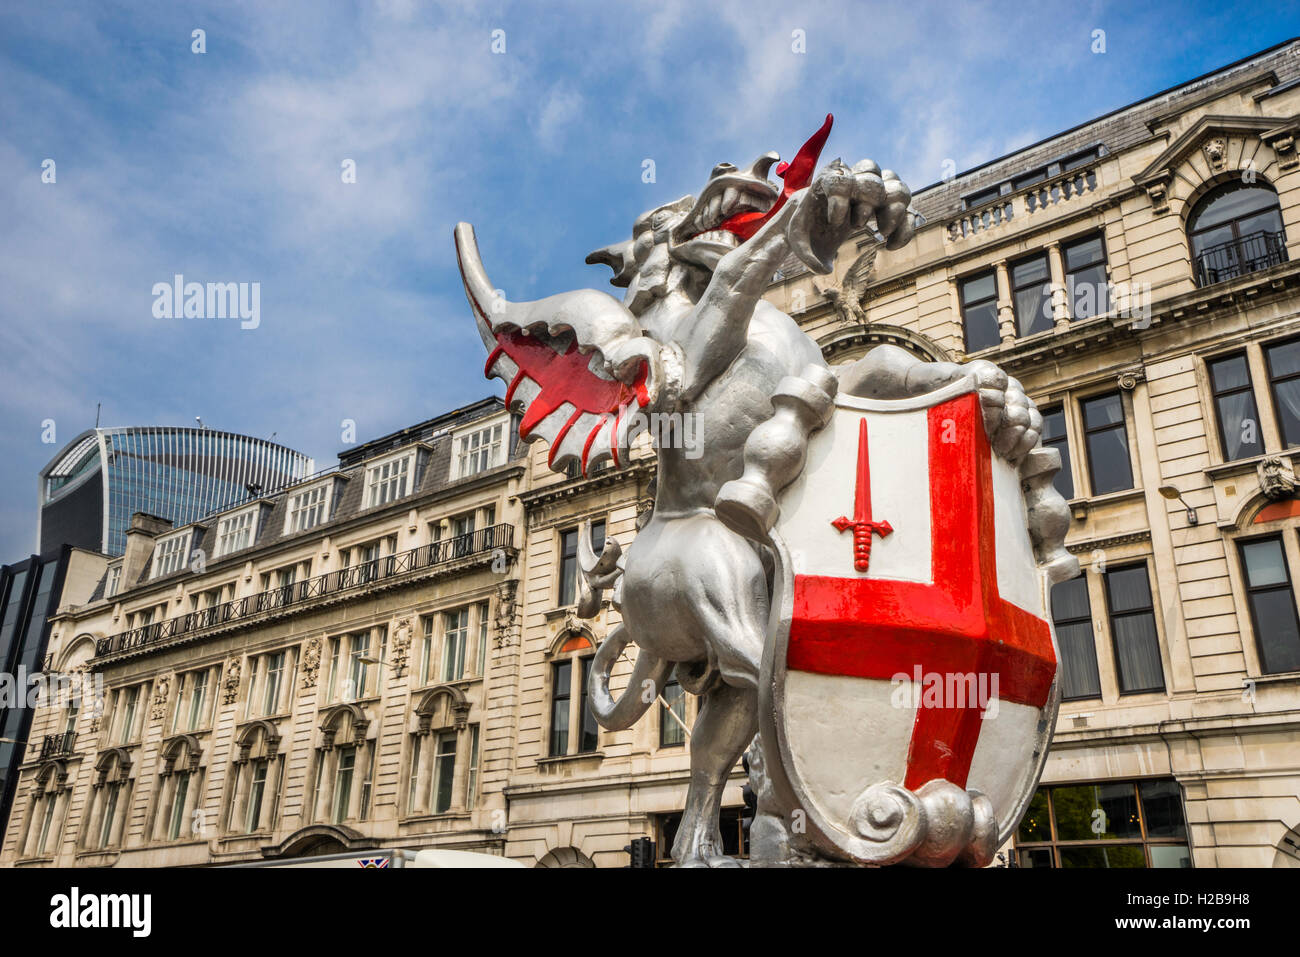 Great Brtain, England, City of London, sculptured emblem of the City of London Coat of arms at Byward Street, Tower - Stock Image